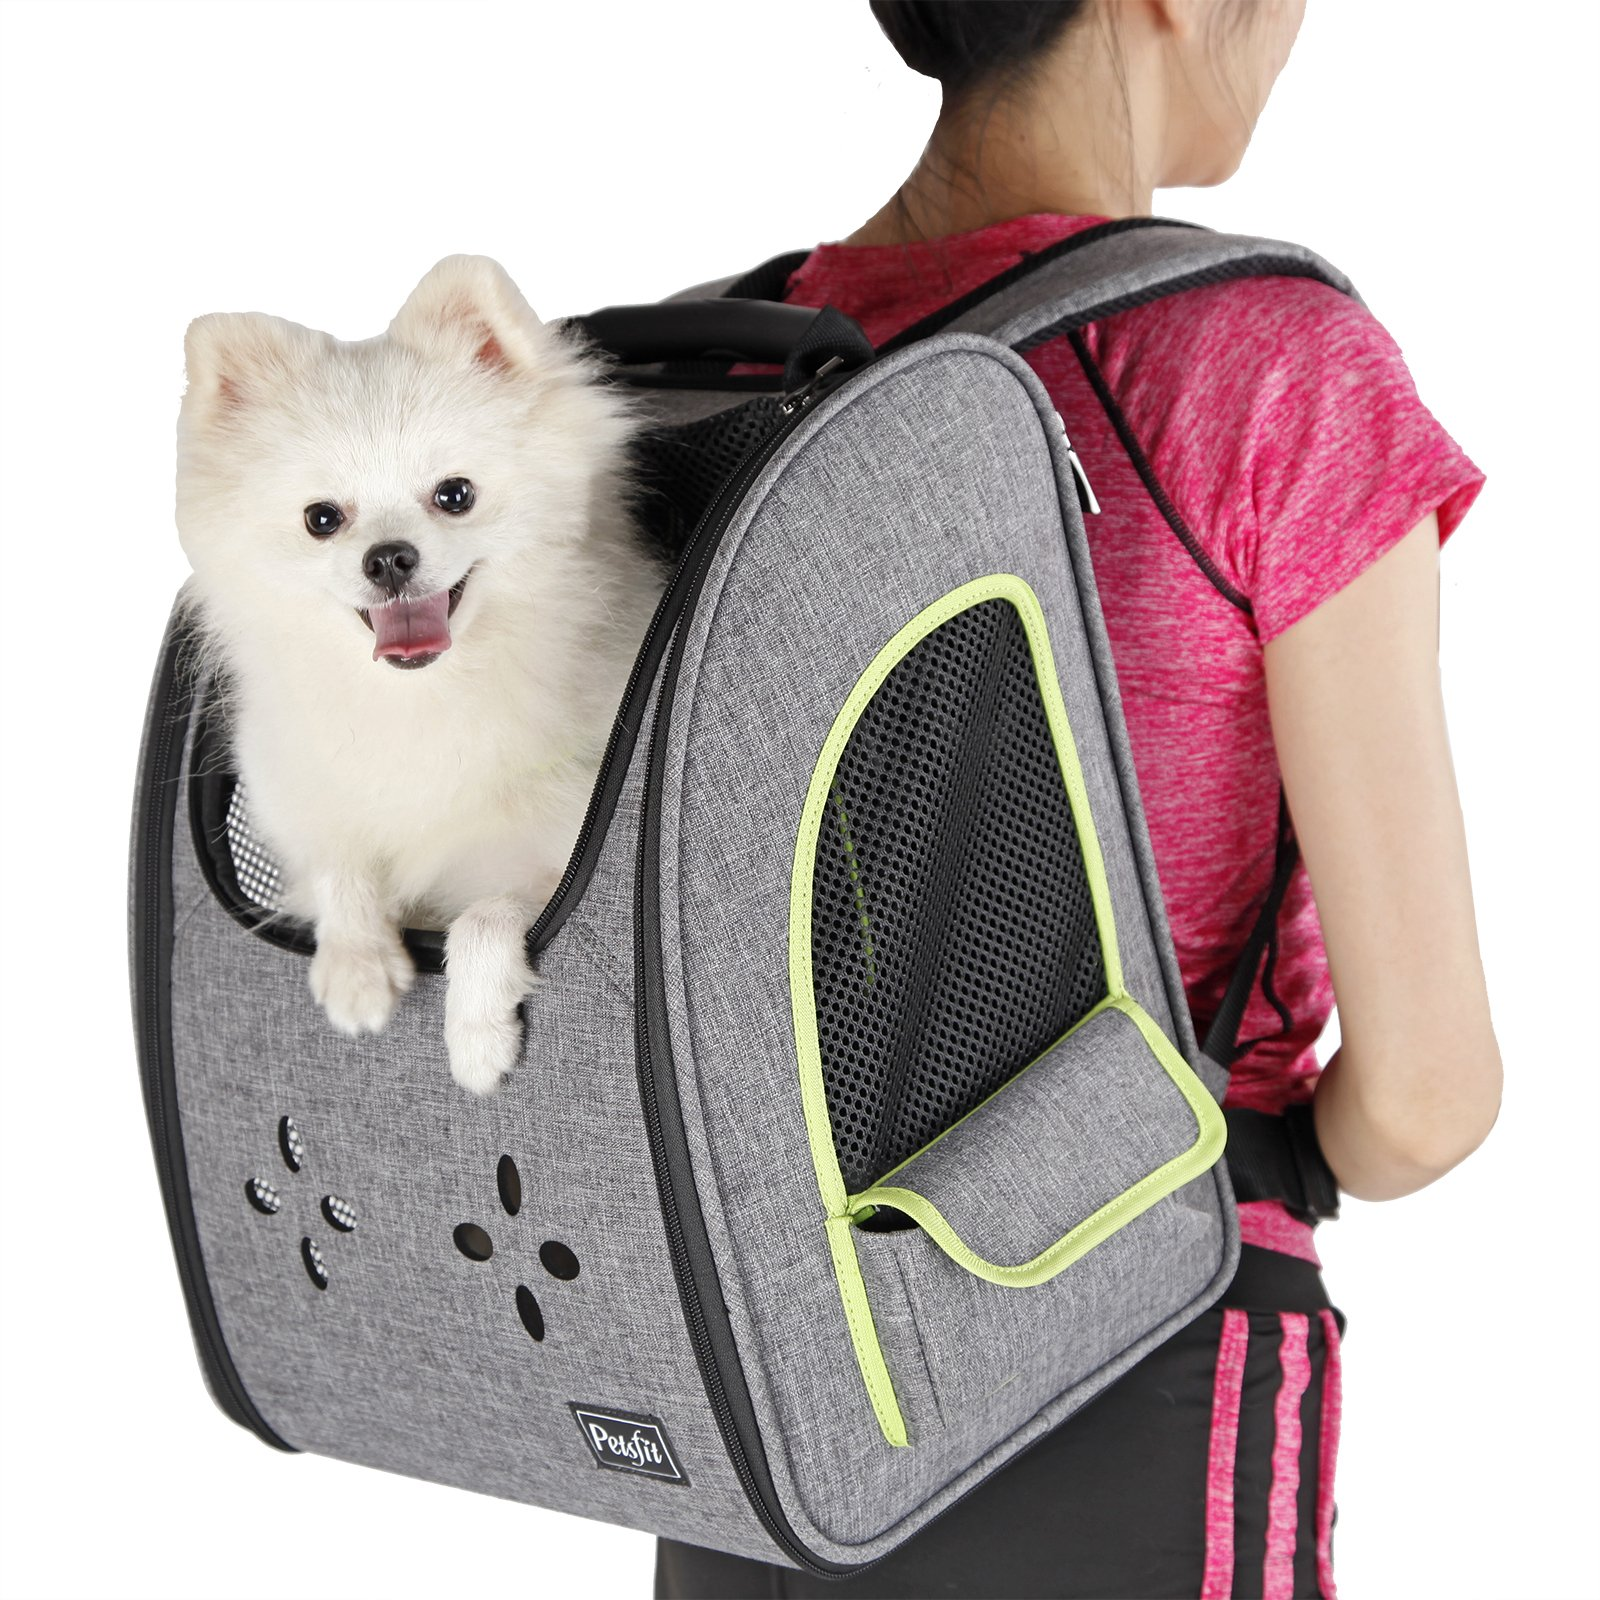 Petsfit Dogs Carriers Backpack for Cat/Dog/Guinea Pig/Bunny Durable and Comfortable Pet Bag by Petsfit (Image #7)